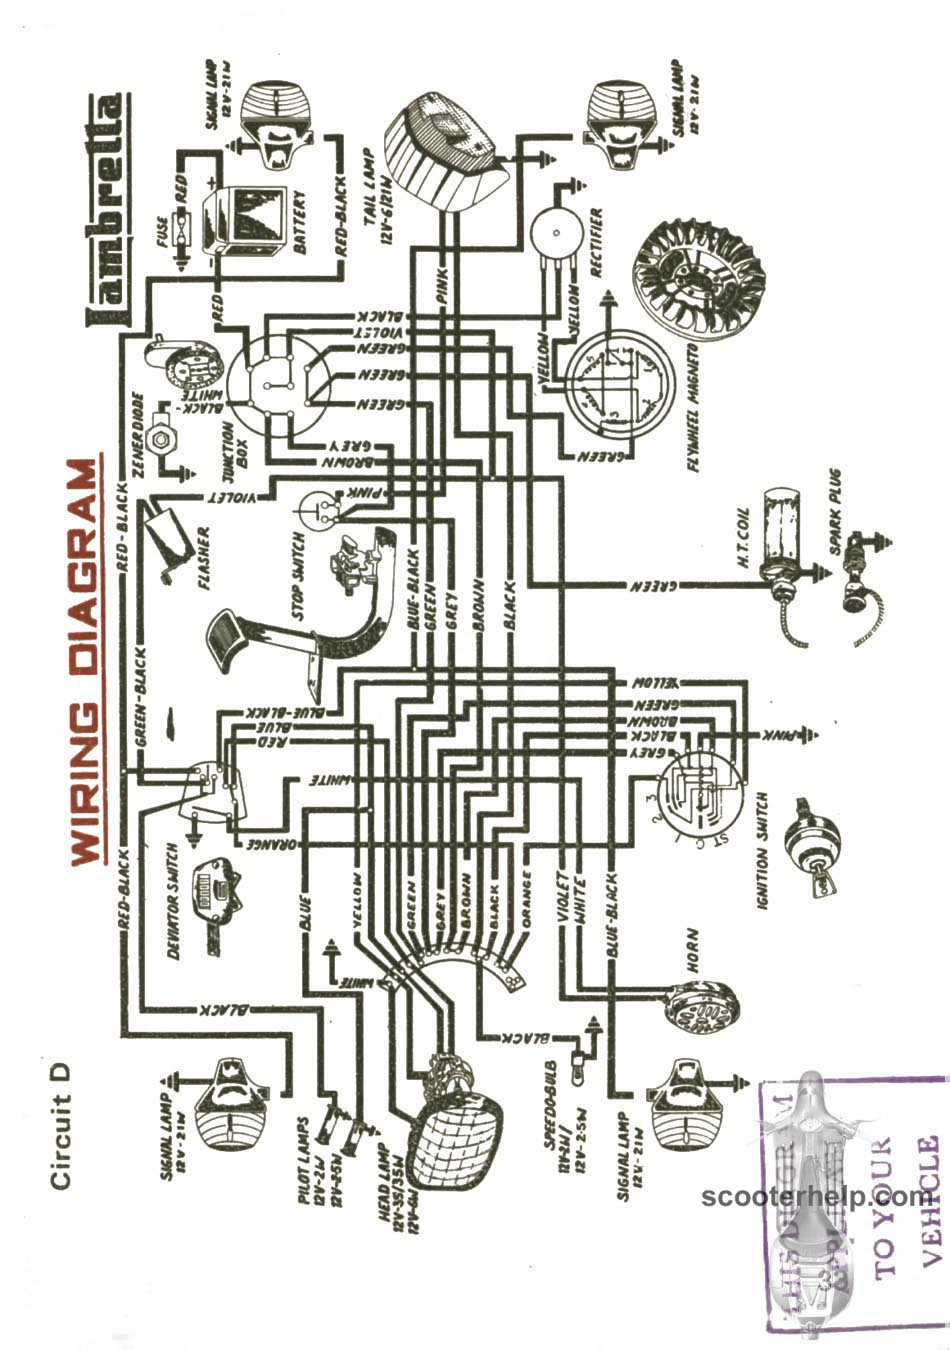 hight resolution of lambretta wiring diagram schema diagram database lambretta gp wiring diagram lambretta wiring diagram